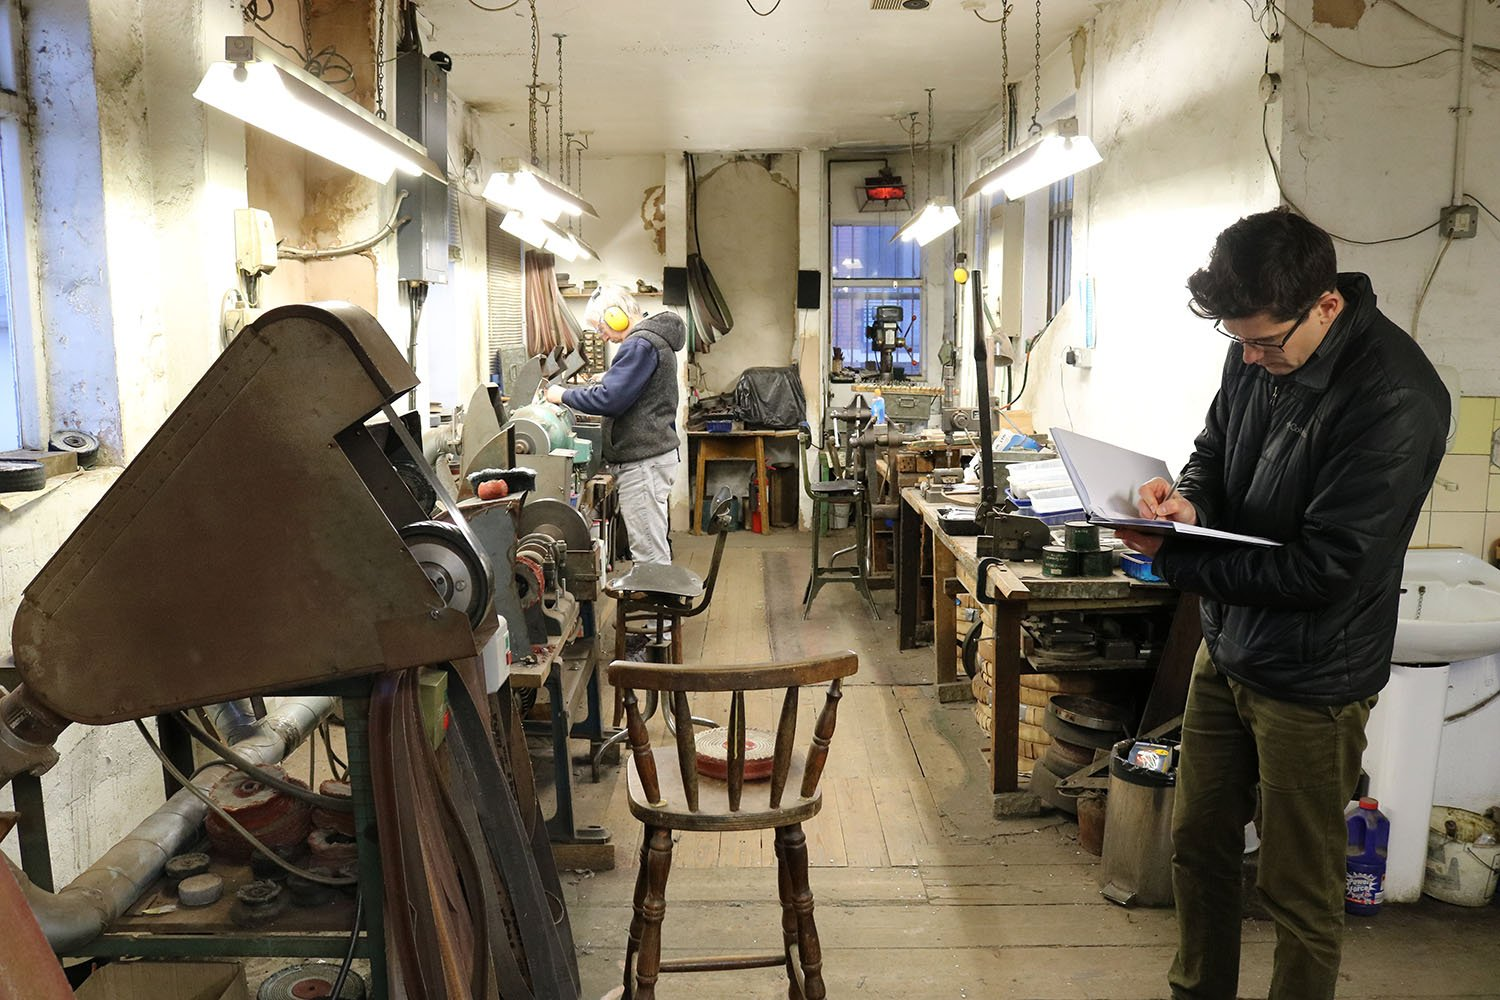 a man writes on a clipboard in the foreground of a metalwork workshop, in the background a man in ear defenders works on equipment